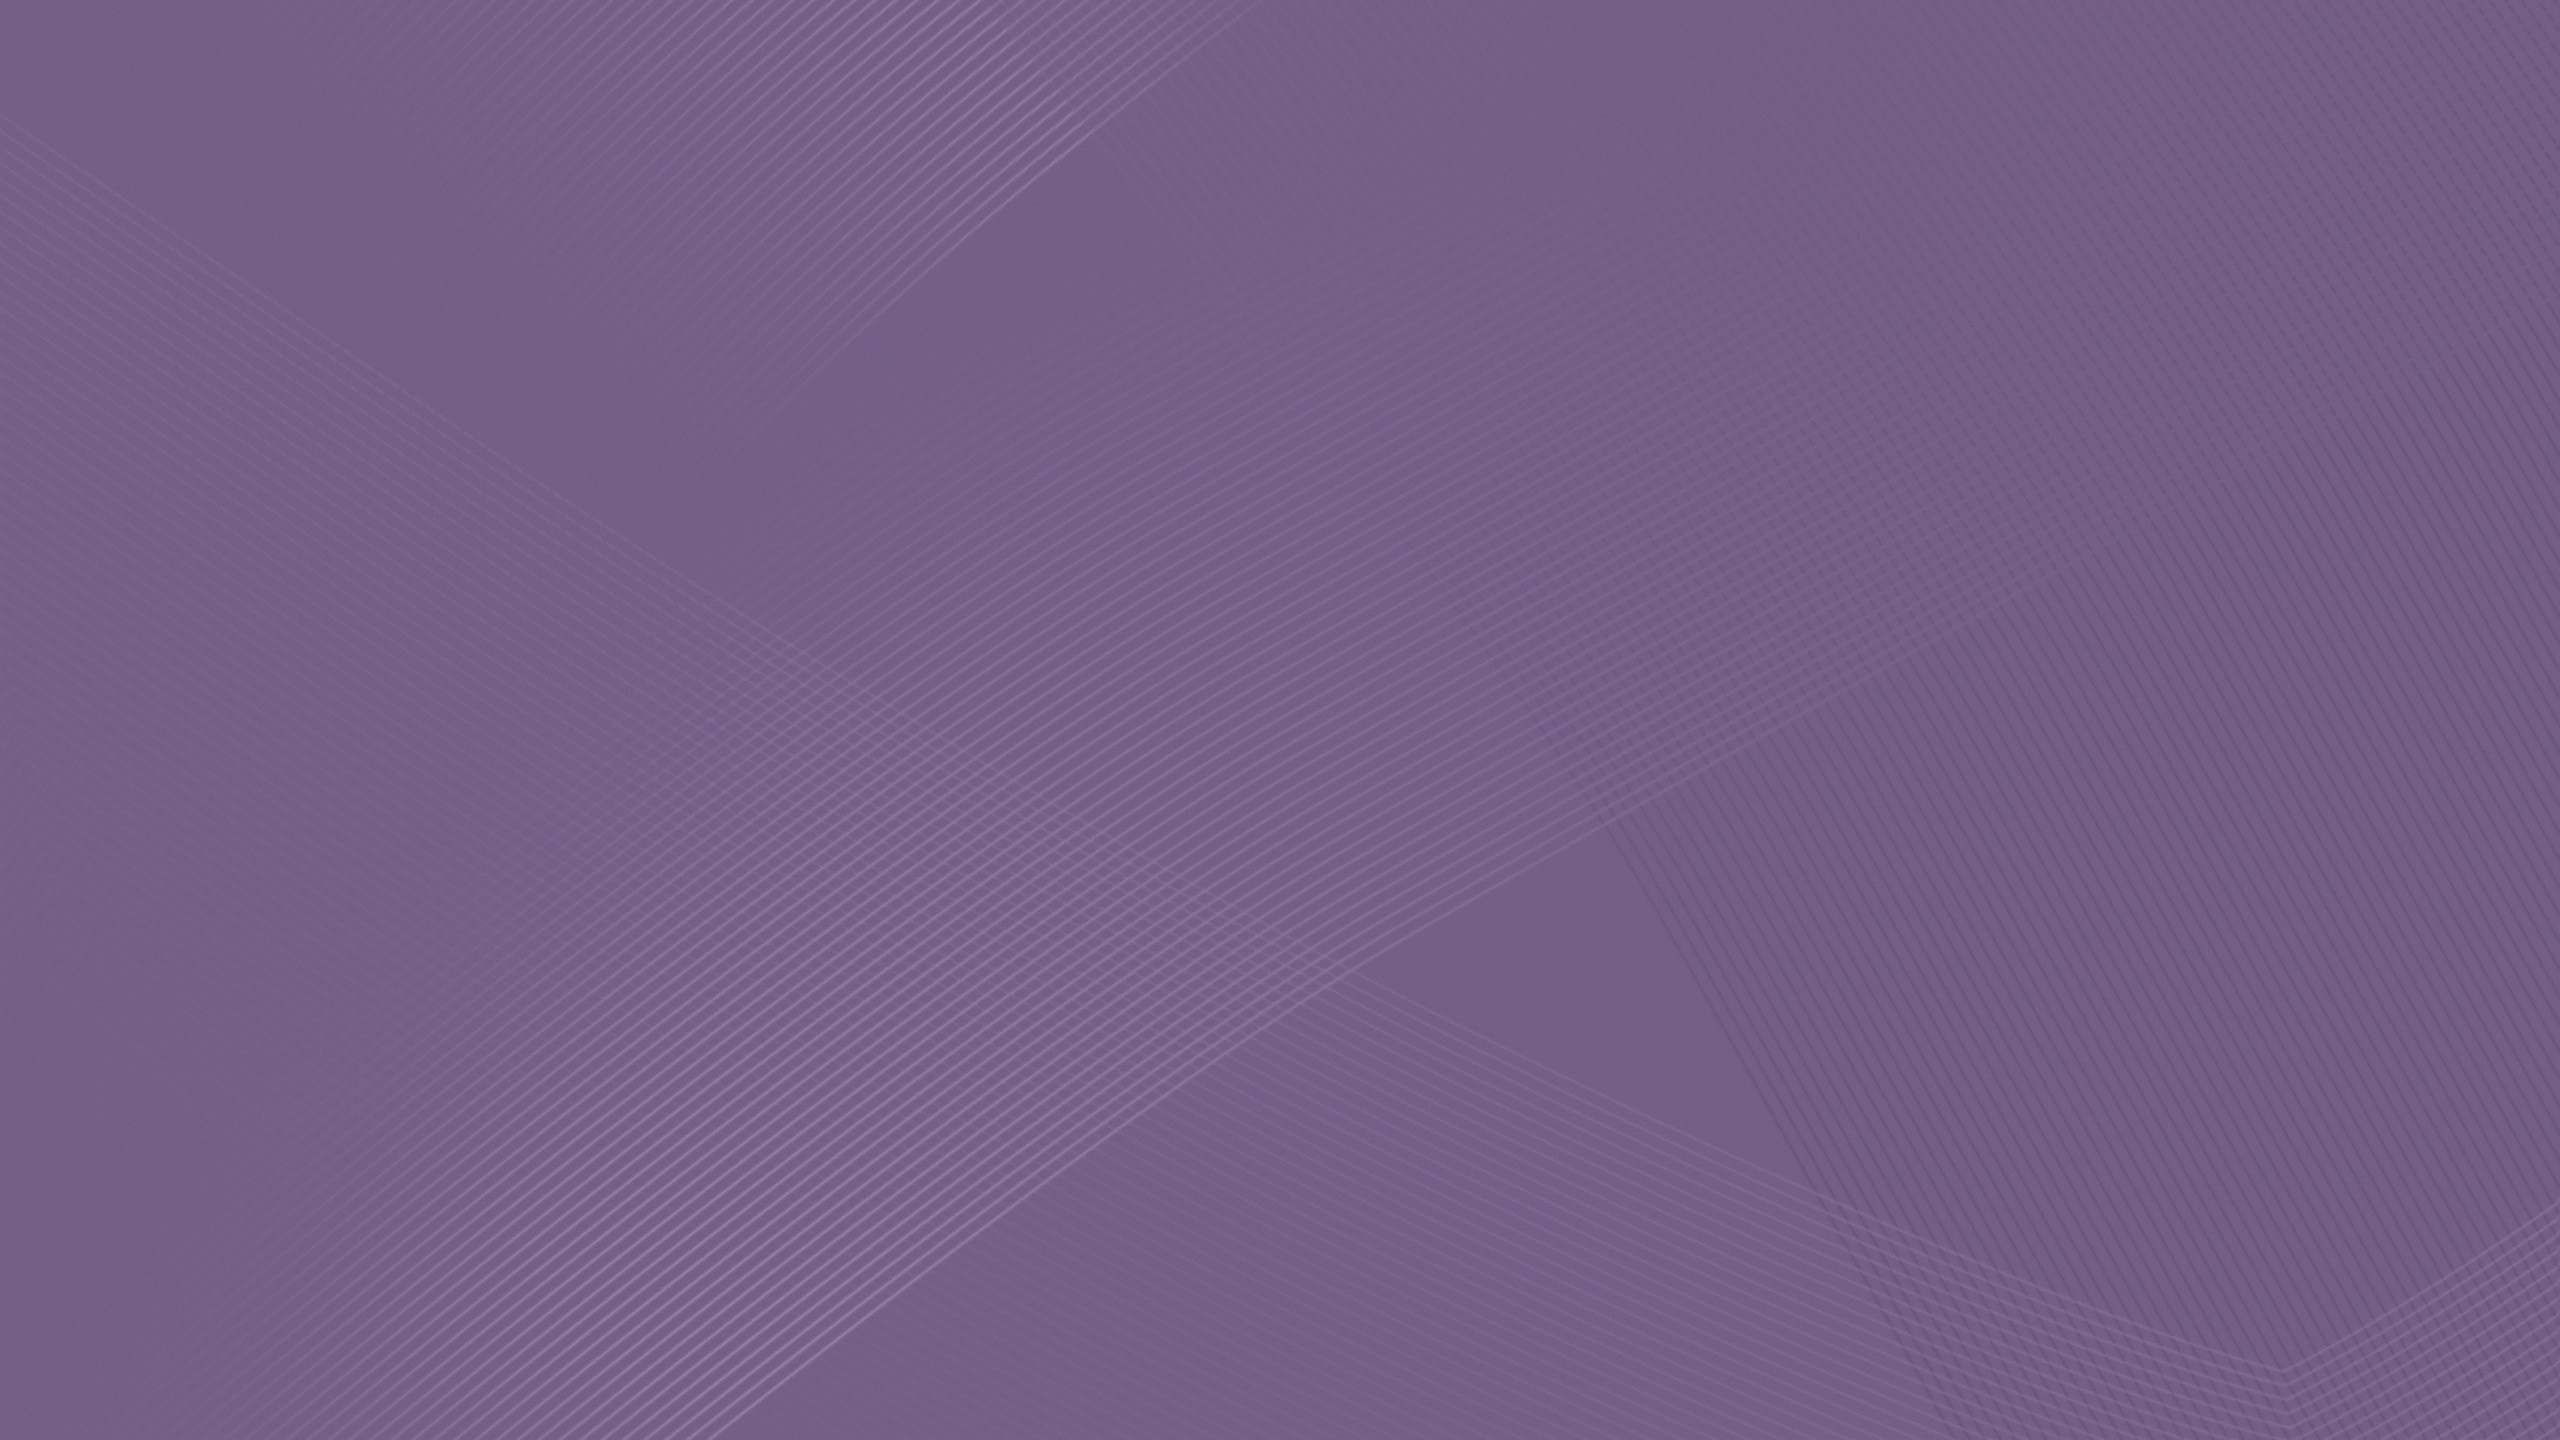 2560x1440 Simple Plum Background